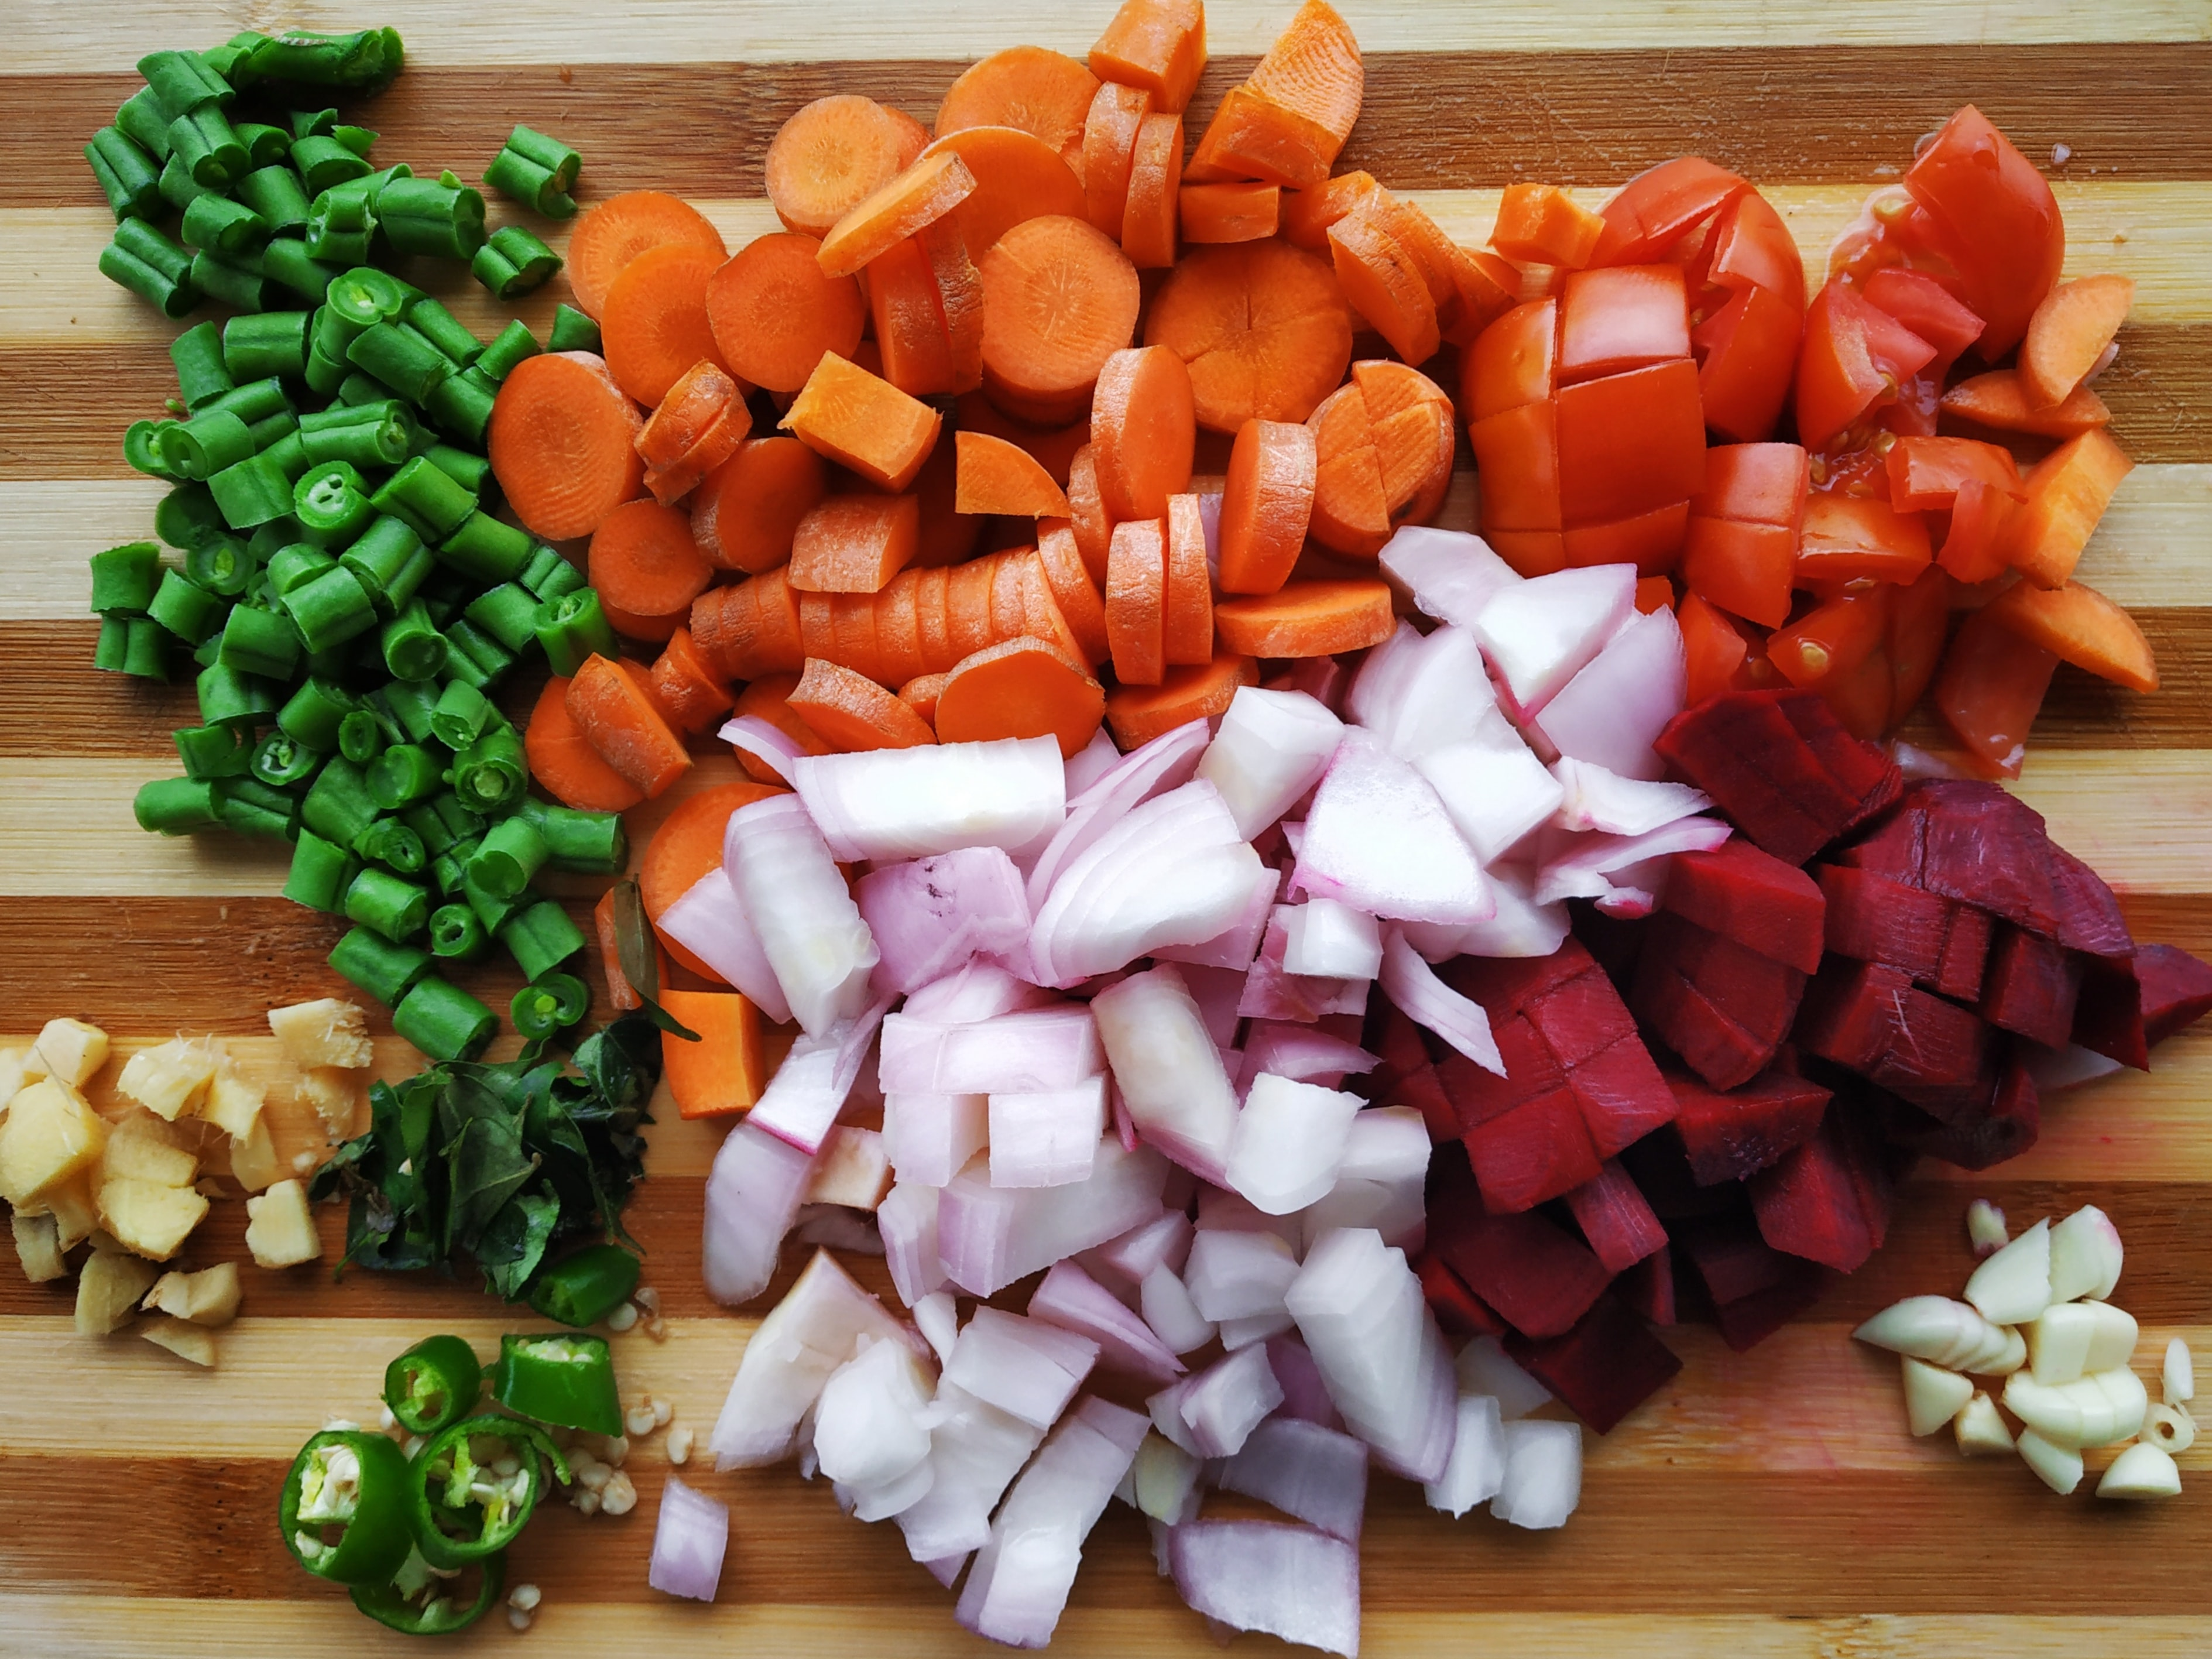 Collection of cutting vegetables